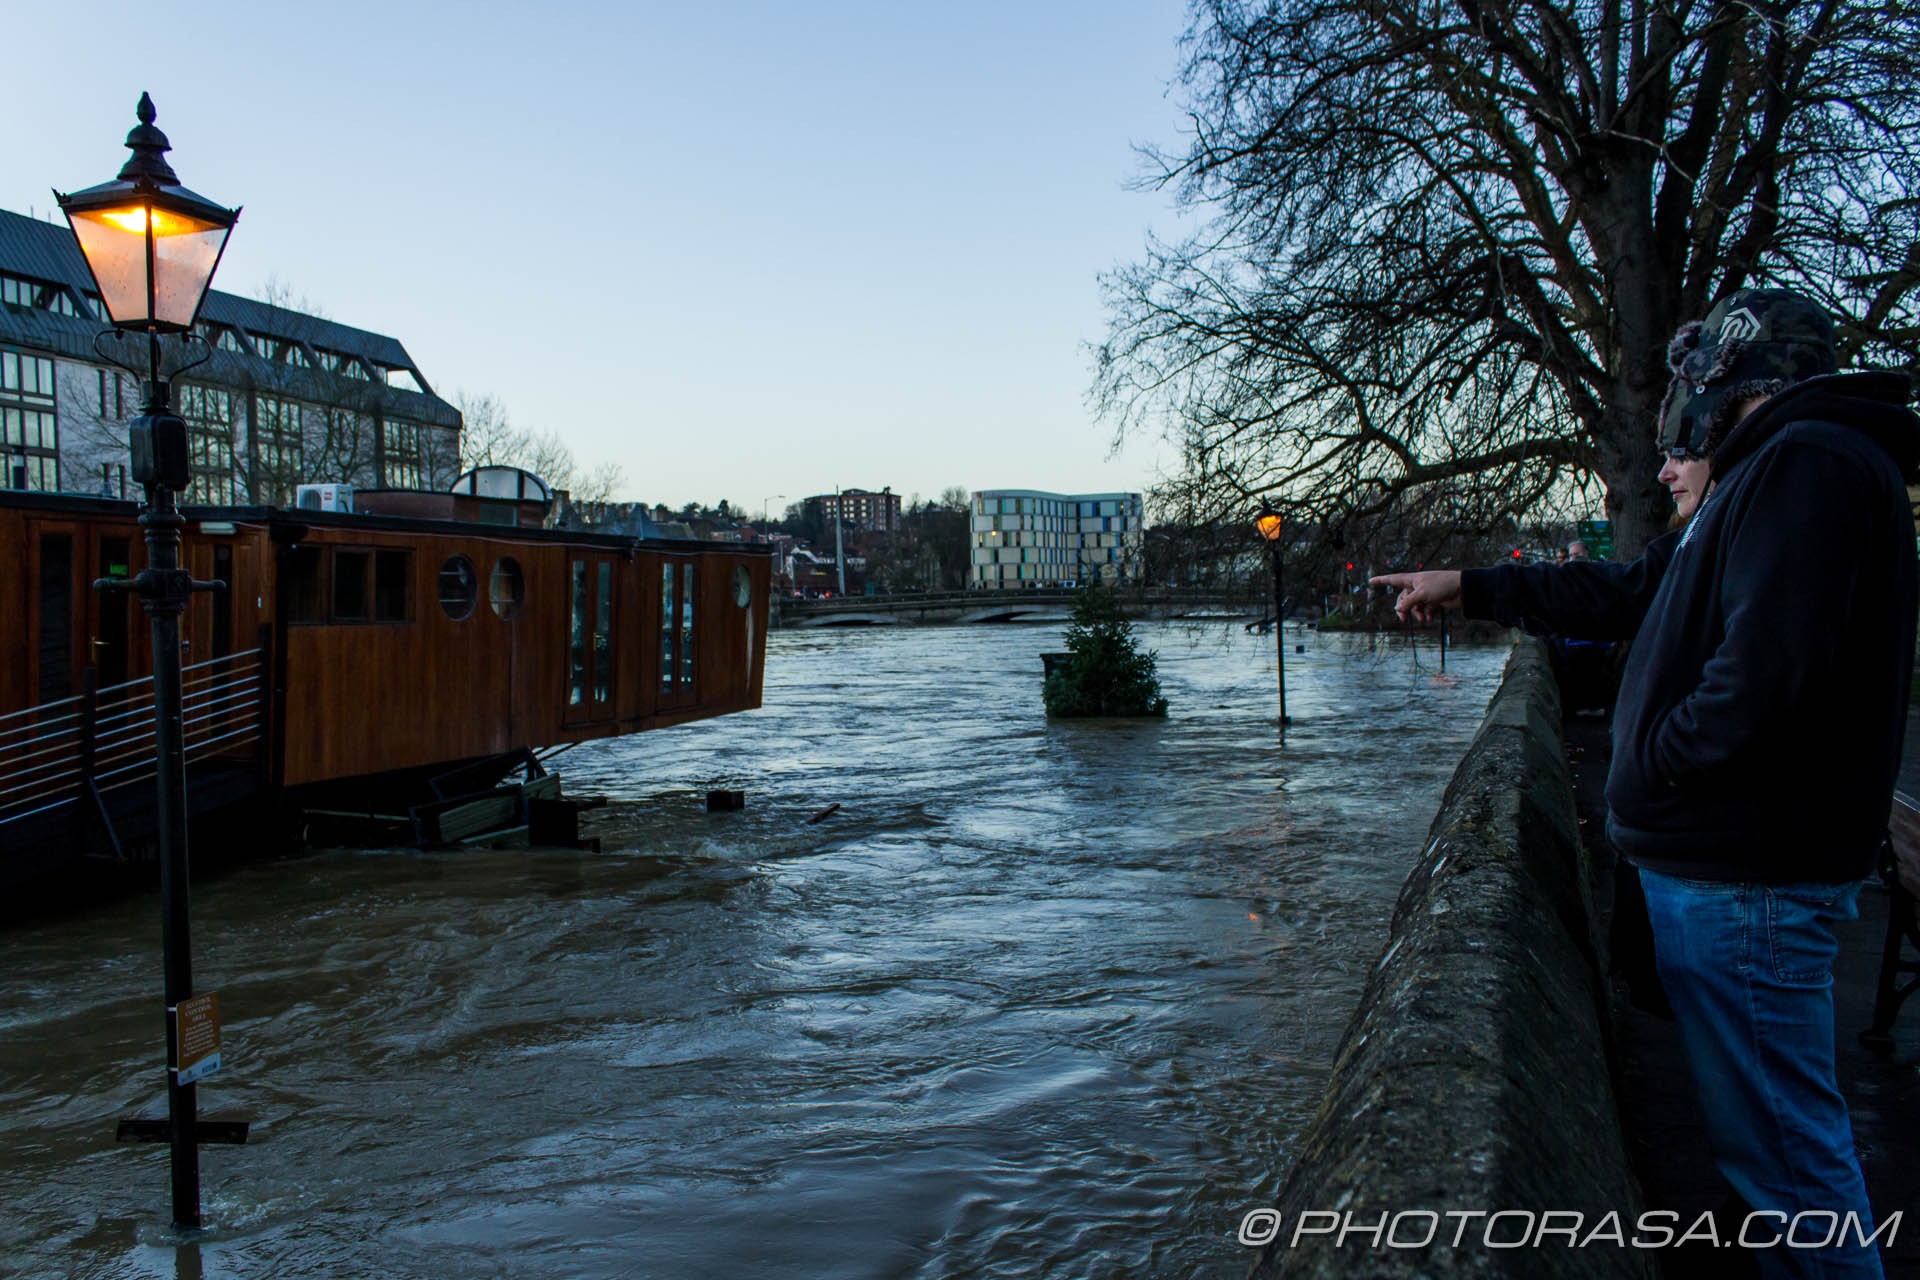 http://photorasa.com/wet-xmas-maidstone-river-medway-floods-town-centre/street-lamps-are-still-on-despite-the-flooding/